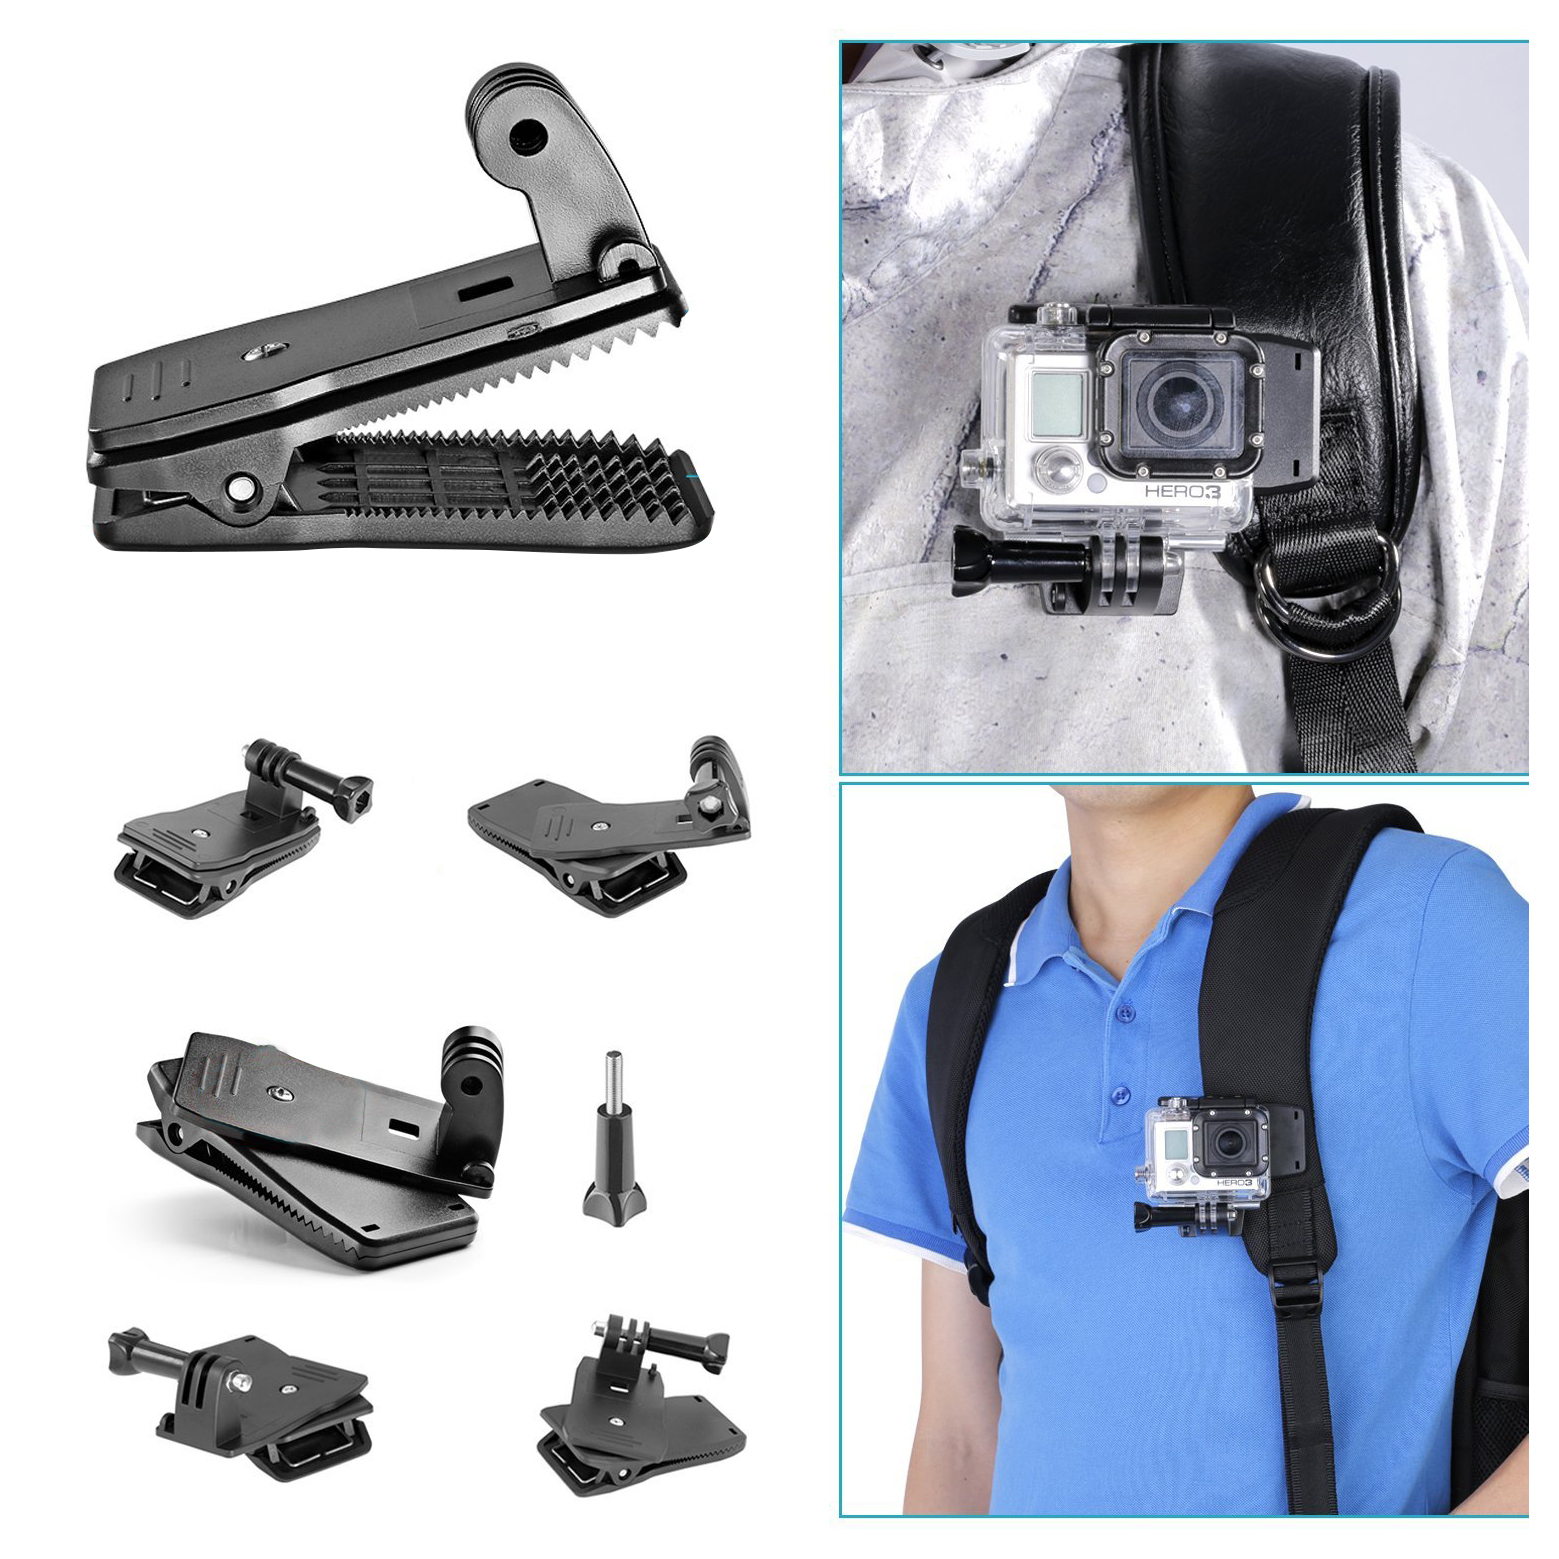 6-in-1/5-in-1 game External sports indispensable accessories for Gopro HD Hero4 Hero 1 2 3 3+ 4, SJ4000, and Sports Cameras